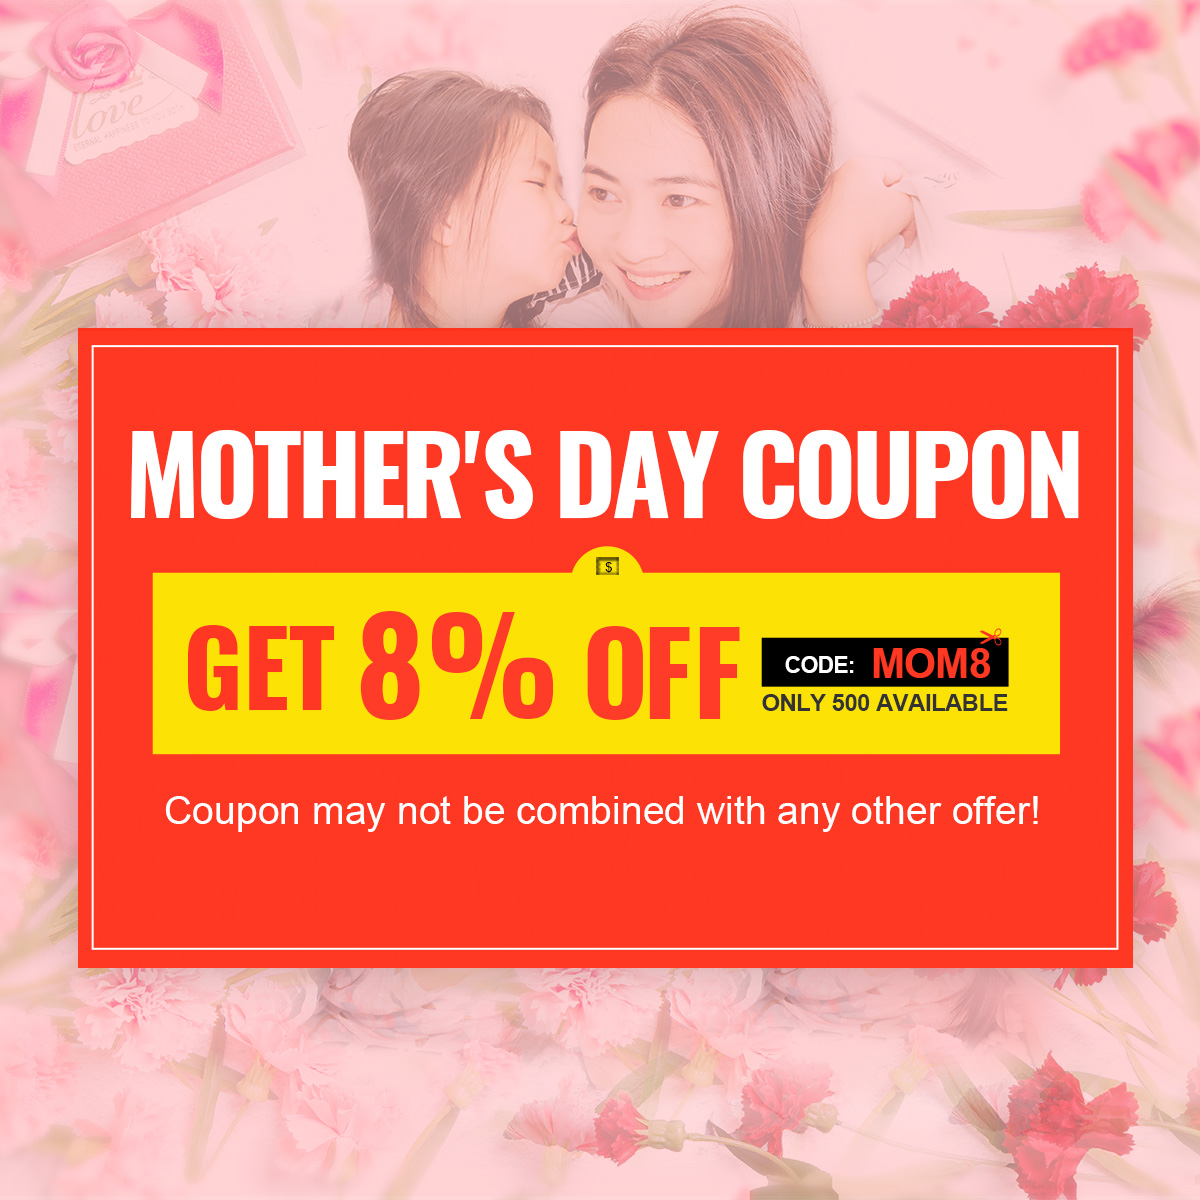 Mother's Day Coupon-8% OFF Sitewide